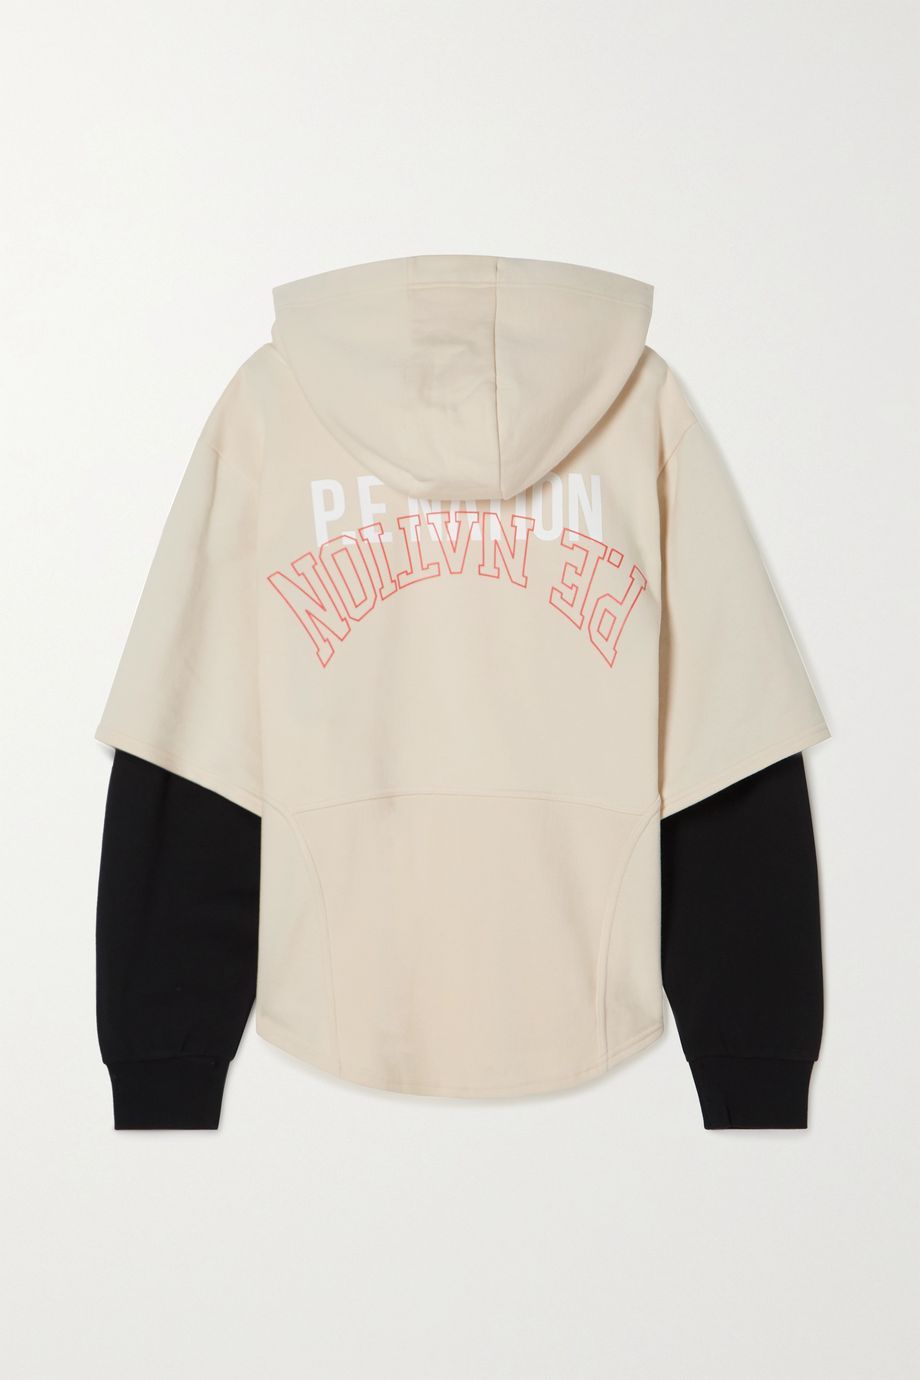 P.E NATION Full Court oversized printed organic French cotton-terry hoodie